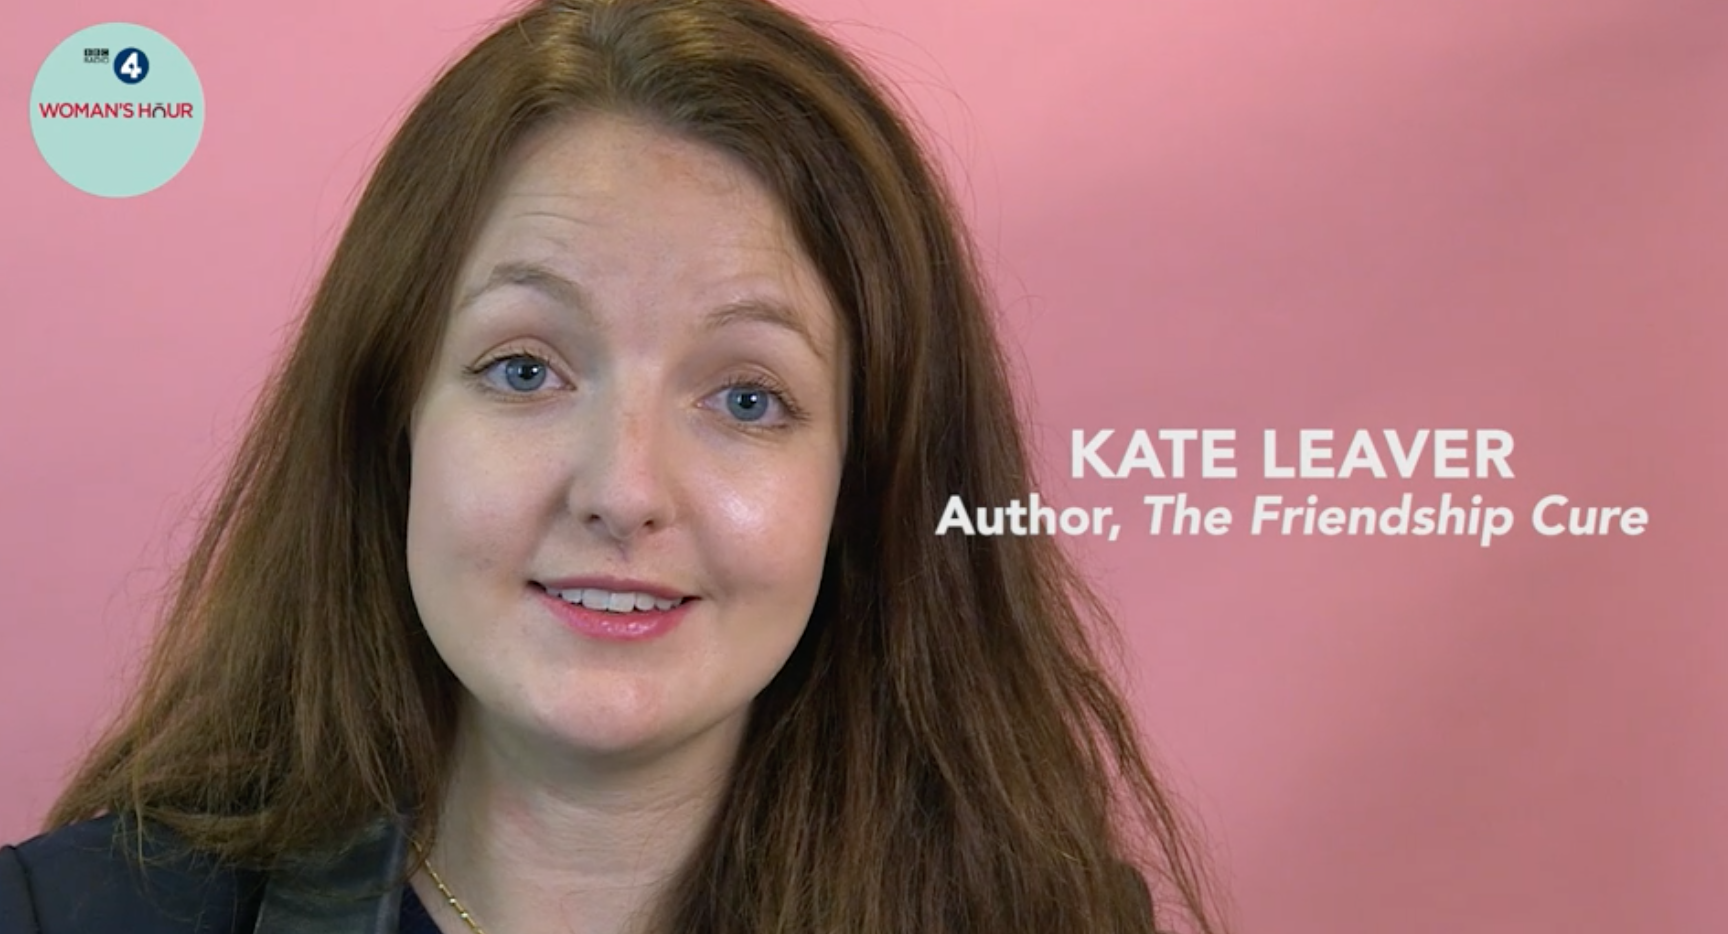 bbc woman's hour - Kate Leaver gives some advice on how to make and end friendships in this video for BBC Radio 4.